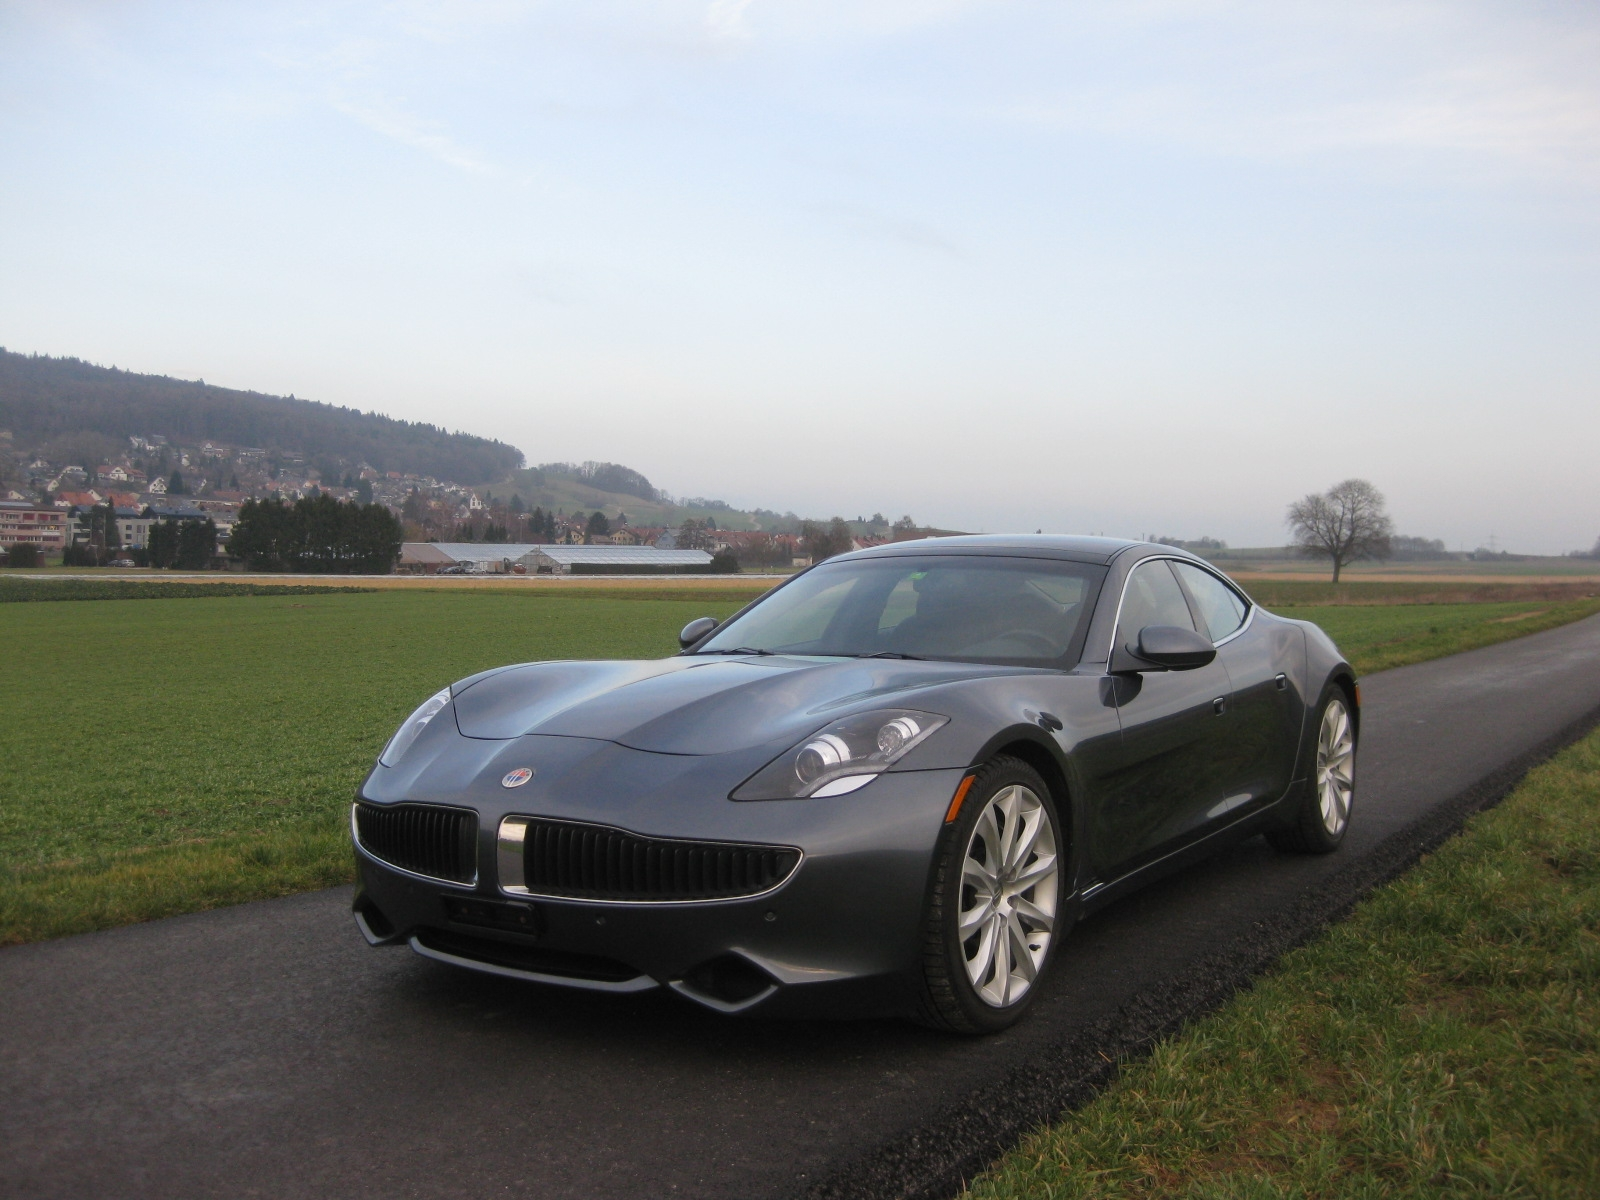 touring garage ag fisker karma limousine 2012. Black Bedroom Furniture Sets. Home Design Ideas